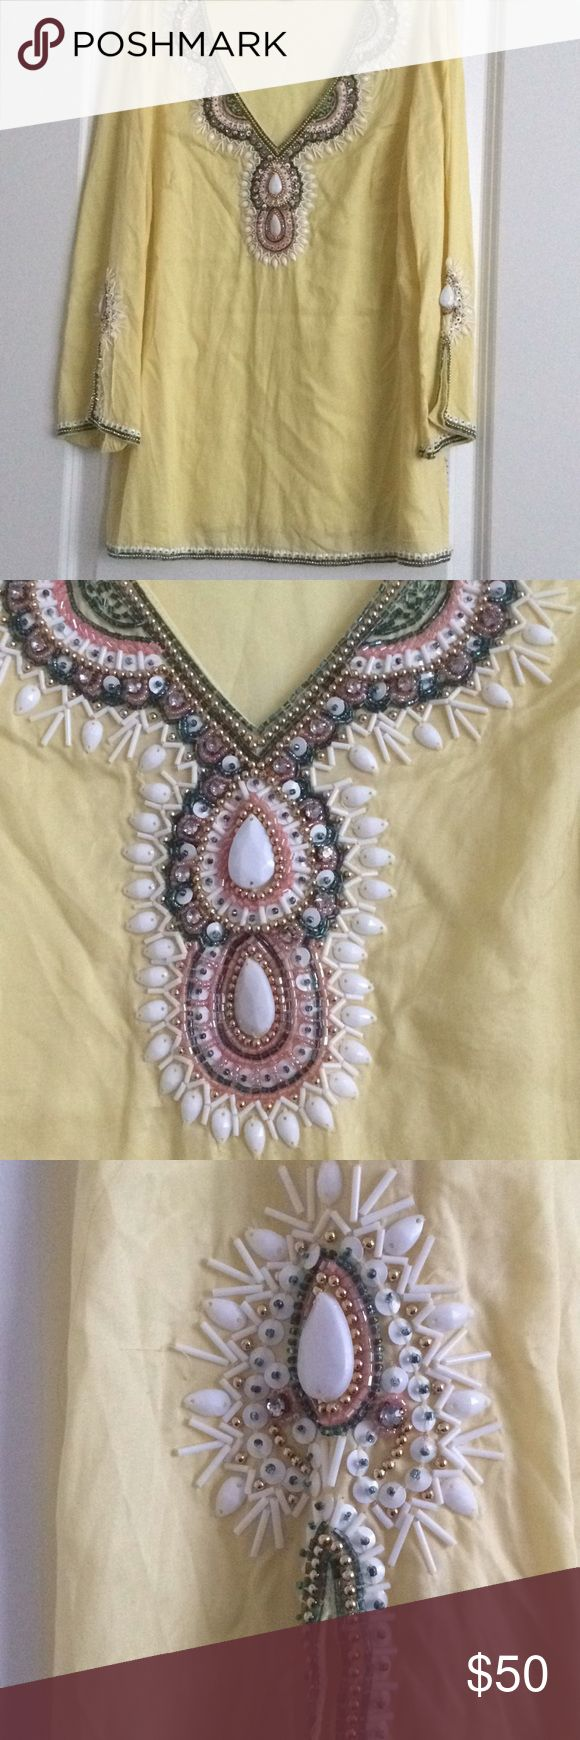 Lilly Pulitzer Yellow Beaded Embellished Tunic S Beautiful yellow Tunic top with white, gold, blue and pink beading. Only missing bead I could find was one long bead on the right sleeve, however due to the heavily embellished nature there may be other small bears missing that I haven't noticed and I tried to photograph as much as possible. It's in great condition and flattering and flowy on! Lilly Pulitzer Tops Tunics